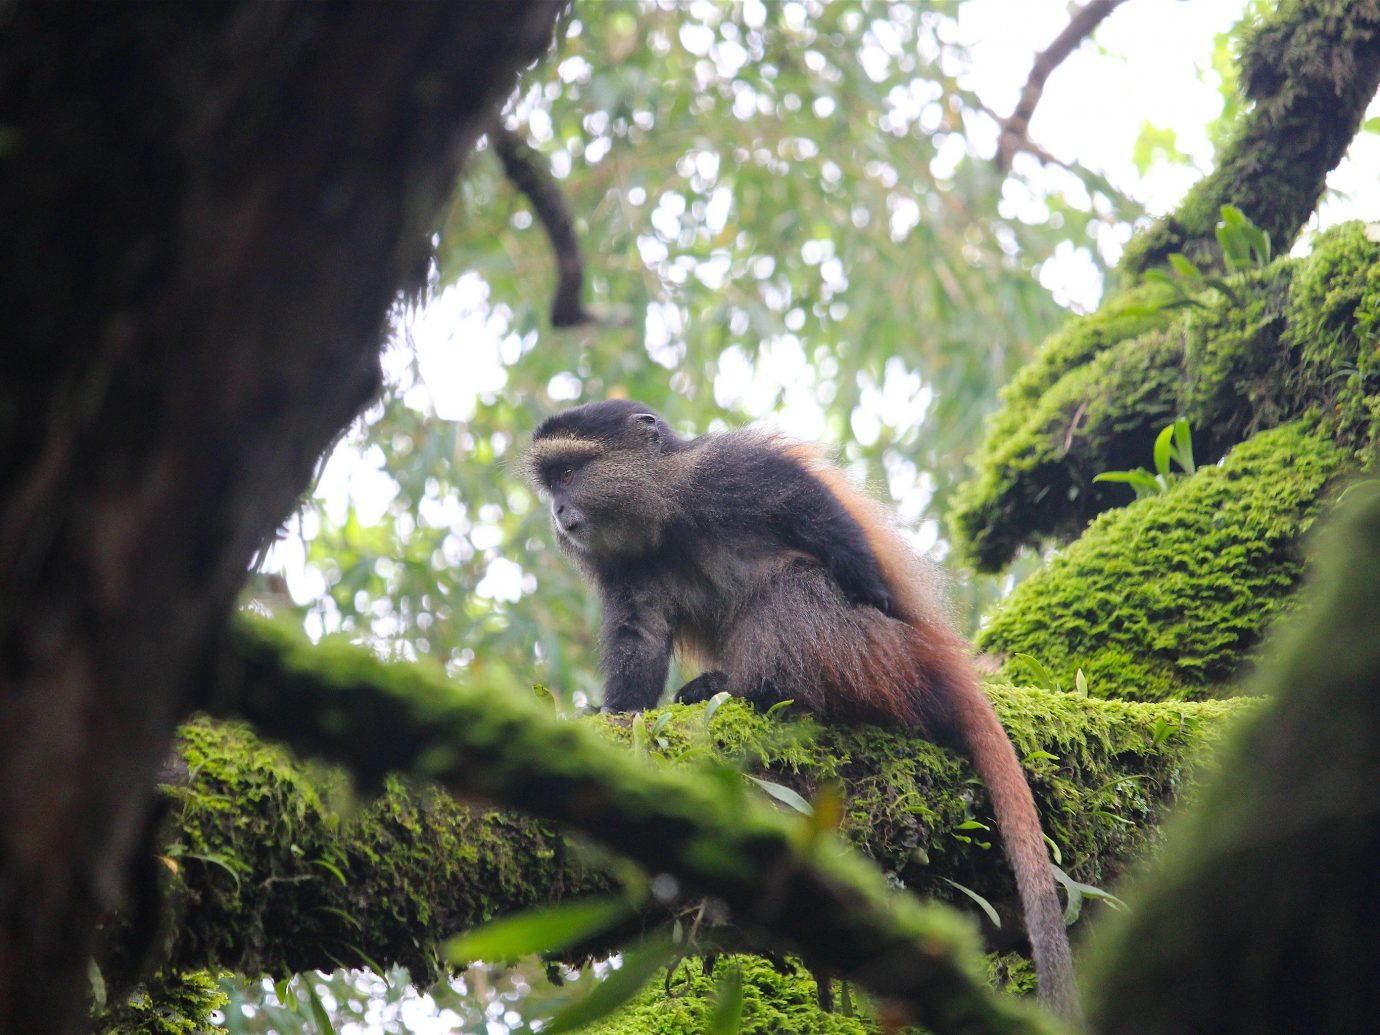 Adventure Off-the-beaten Path Trip Ideas tree outdoor animal bear fauna mammal Wildlife nature reserve leaf Jungle new world monkey Forest primate branch rainforest macaque green organism old world monkey woodland grass old growth forest wood day lush wooded